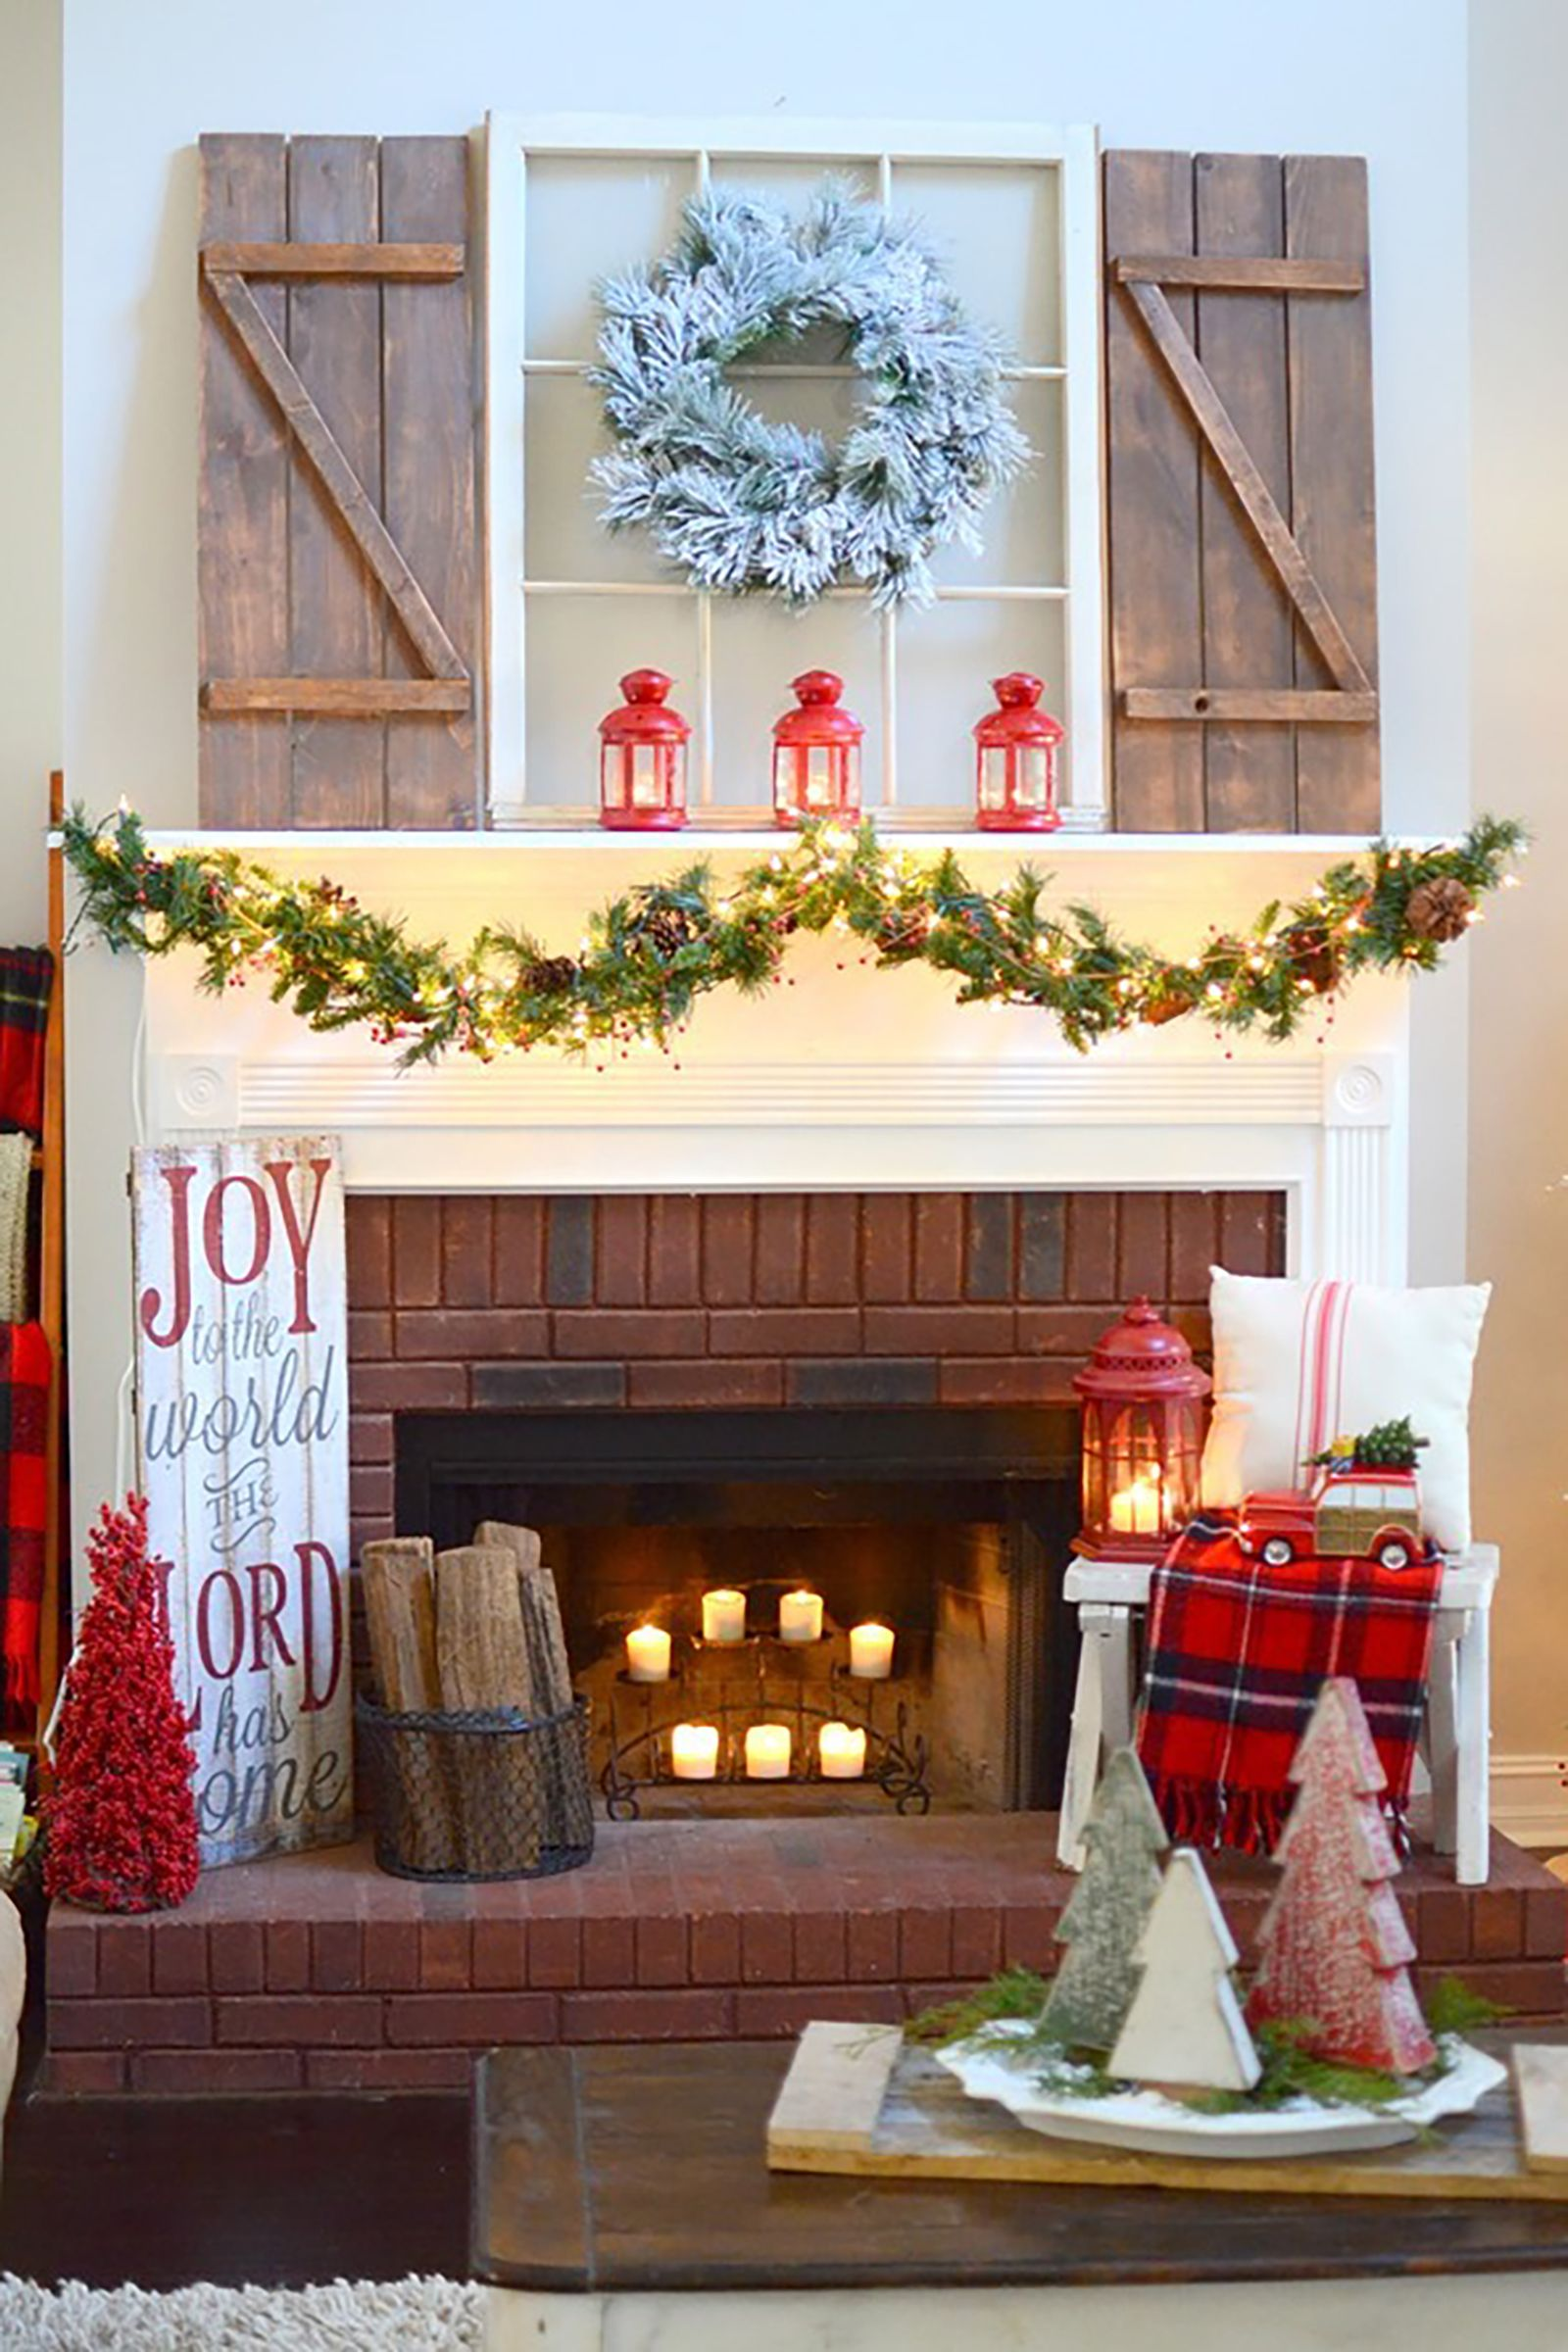 Decorations For Fireplaces 56 Christmas Mantel Decorations Ideas For Holiday Fireplace